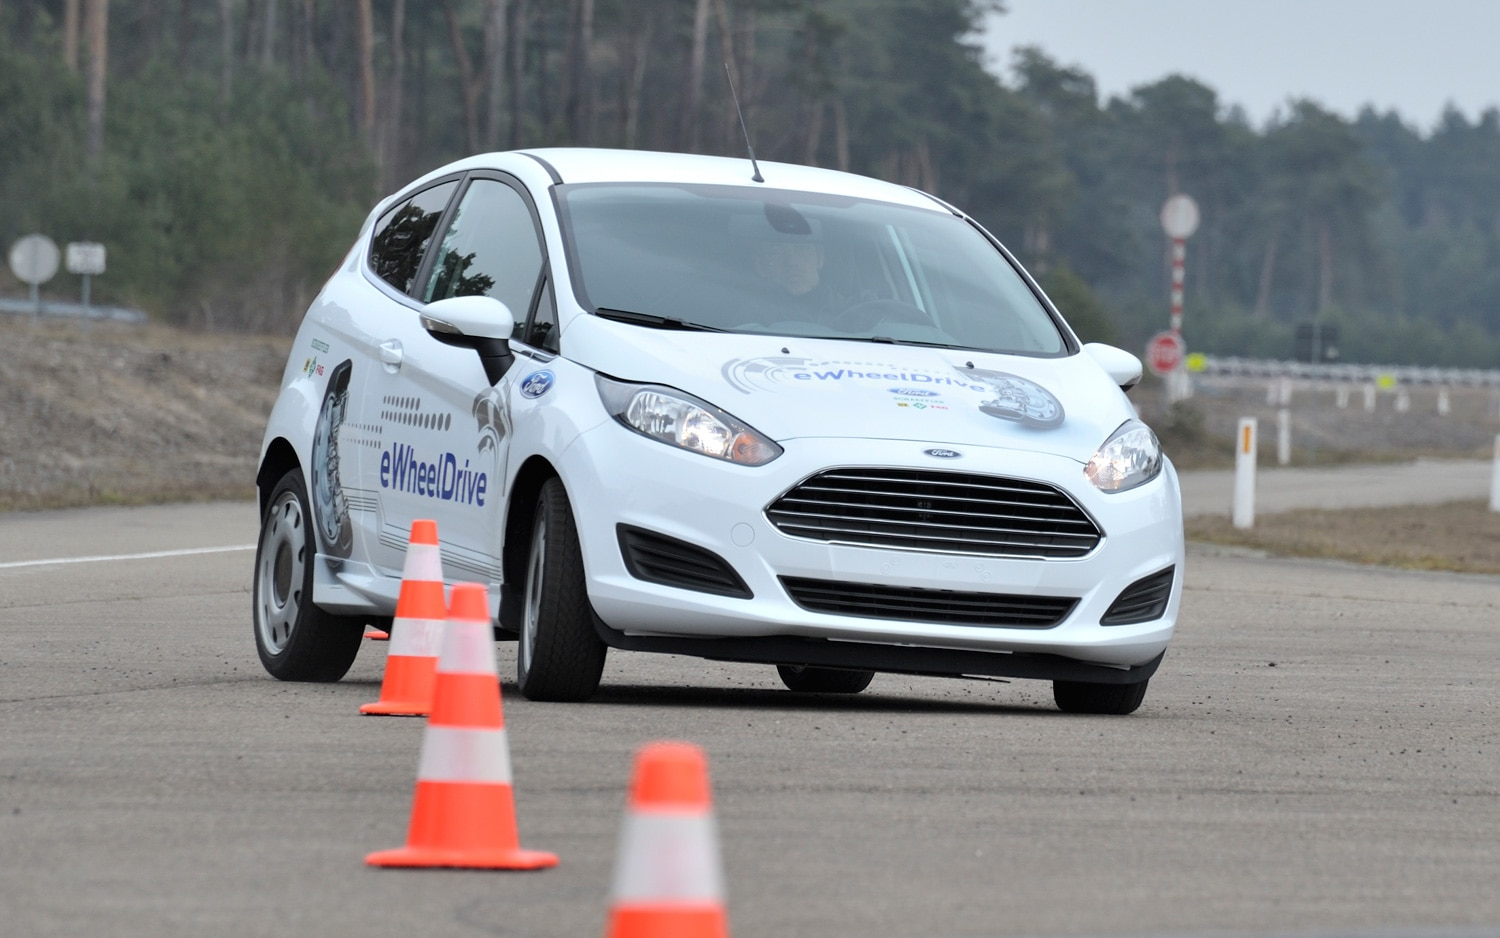 Ford Fiesta EWheelDrive EV Prototype In Slalom Course1